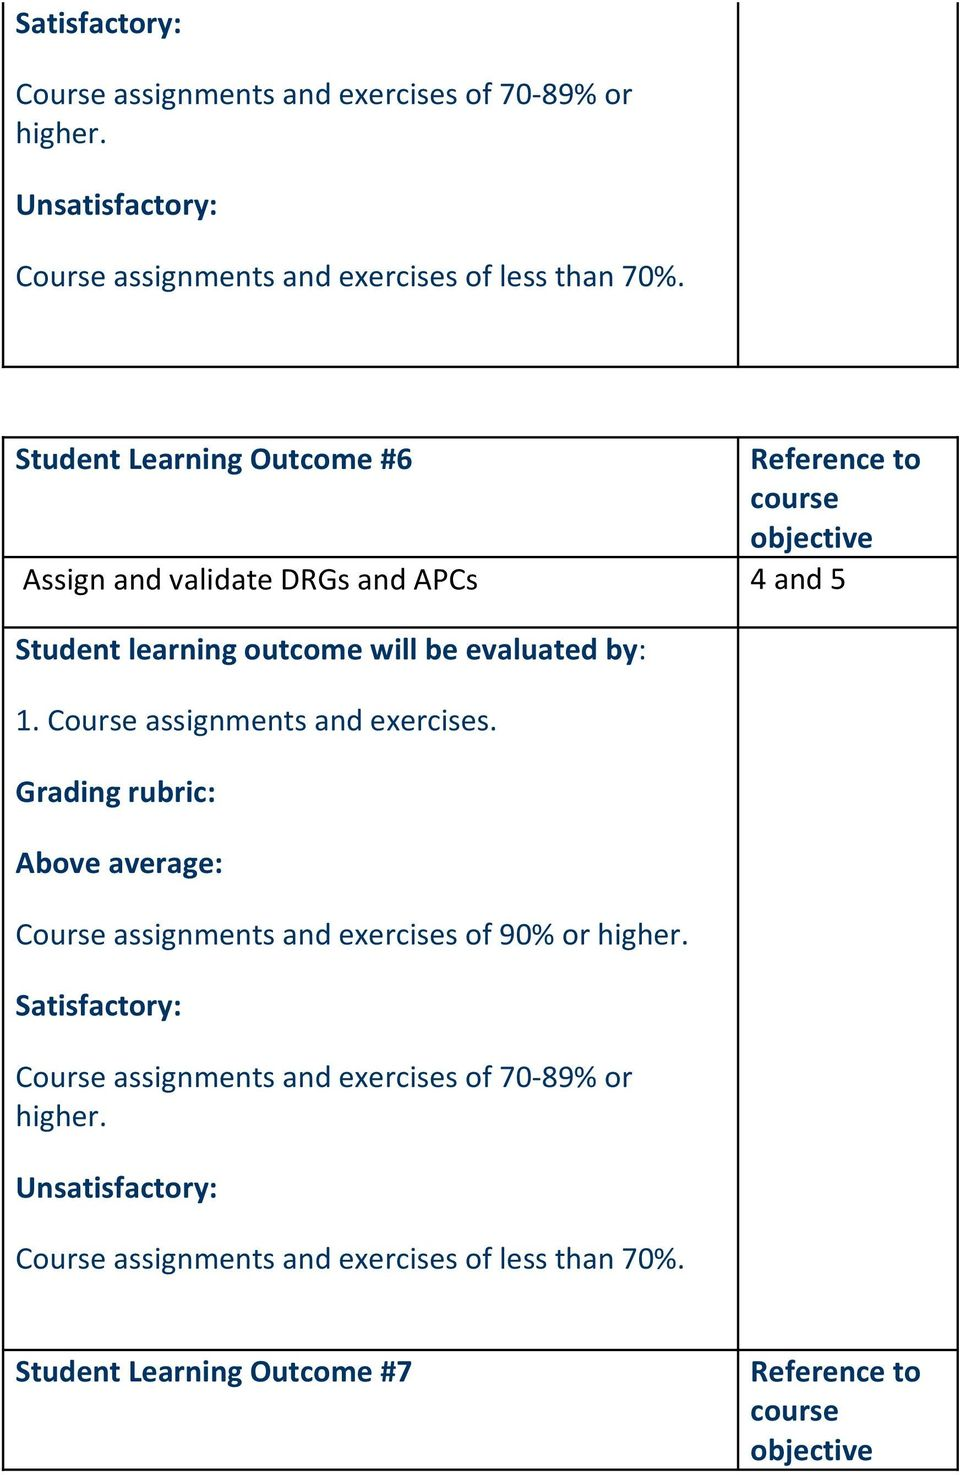 Student Learning Outcome #6 Assign and validate DRGs and APCs 4 and 5 1. Course assignments and exercises.